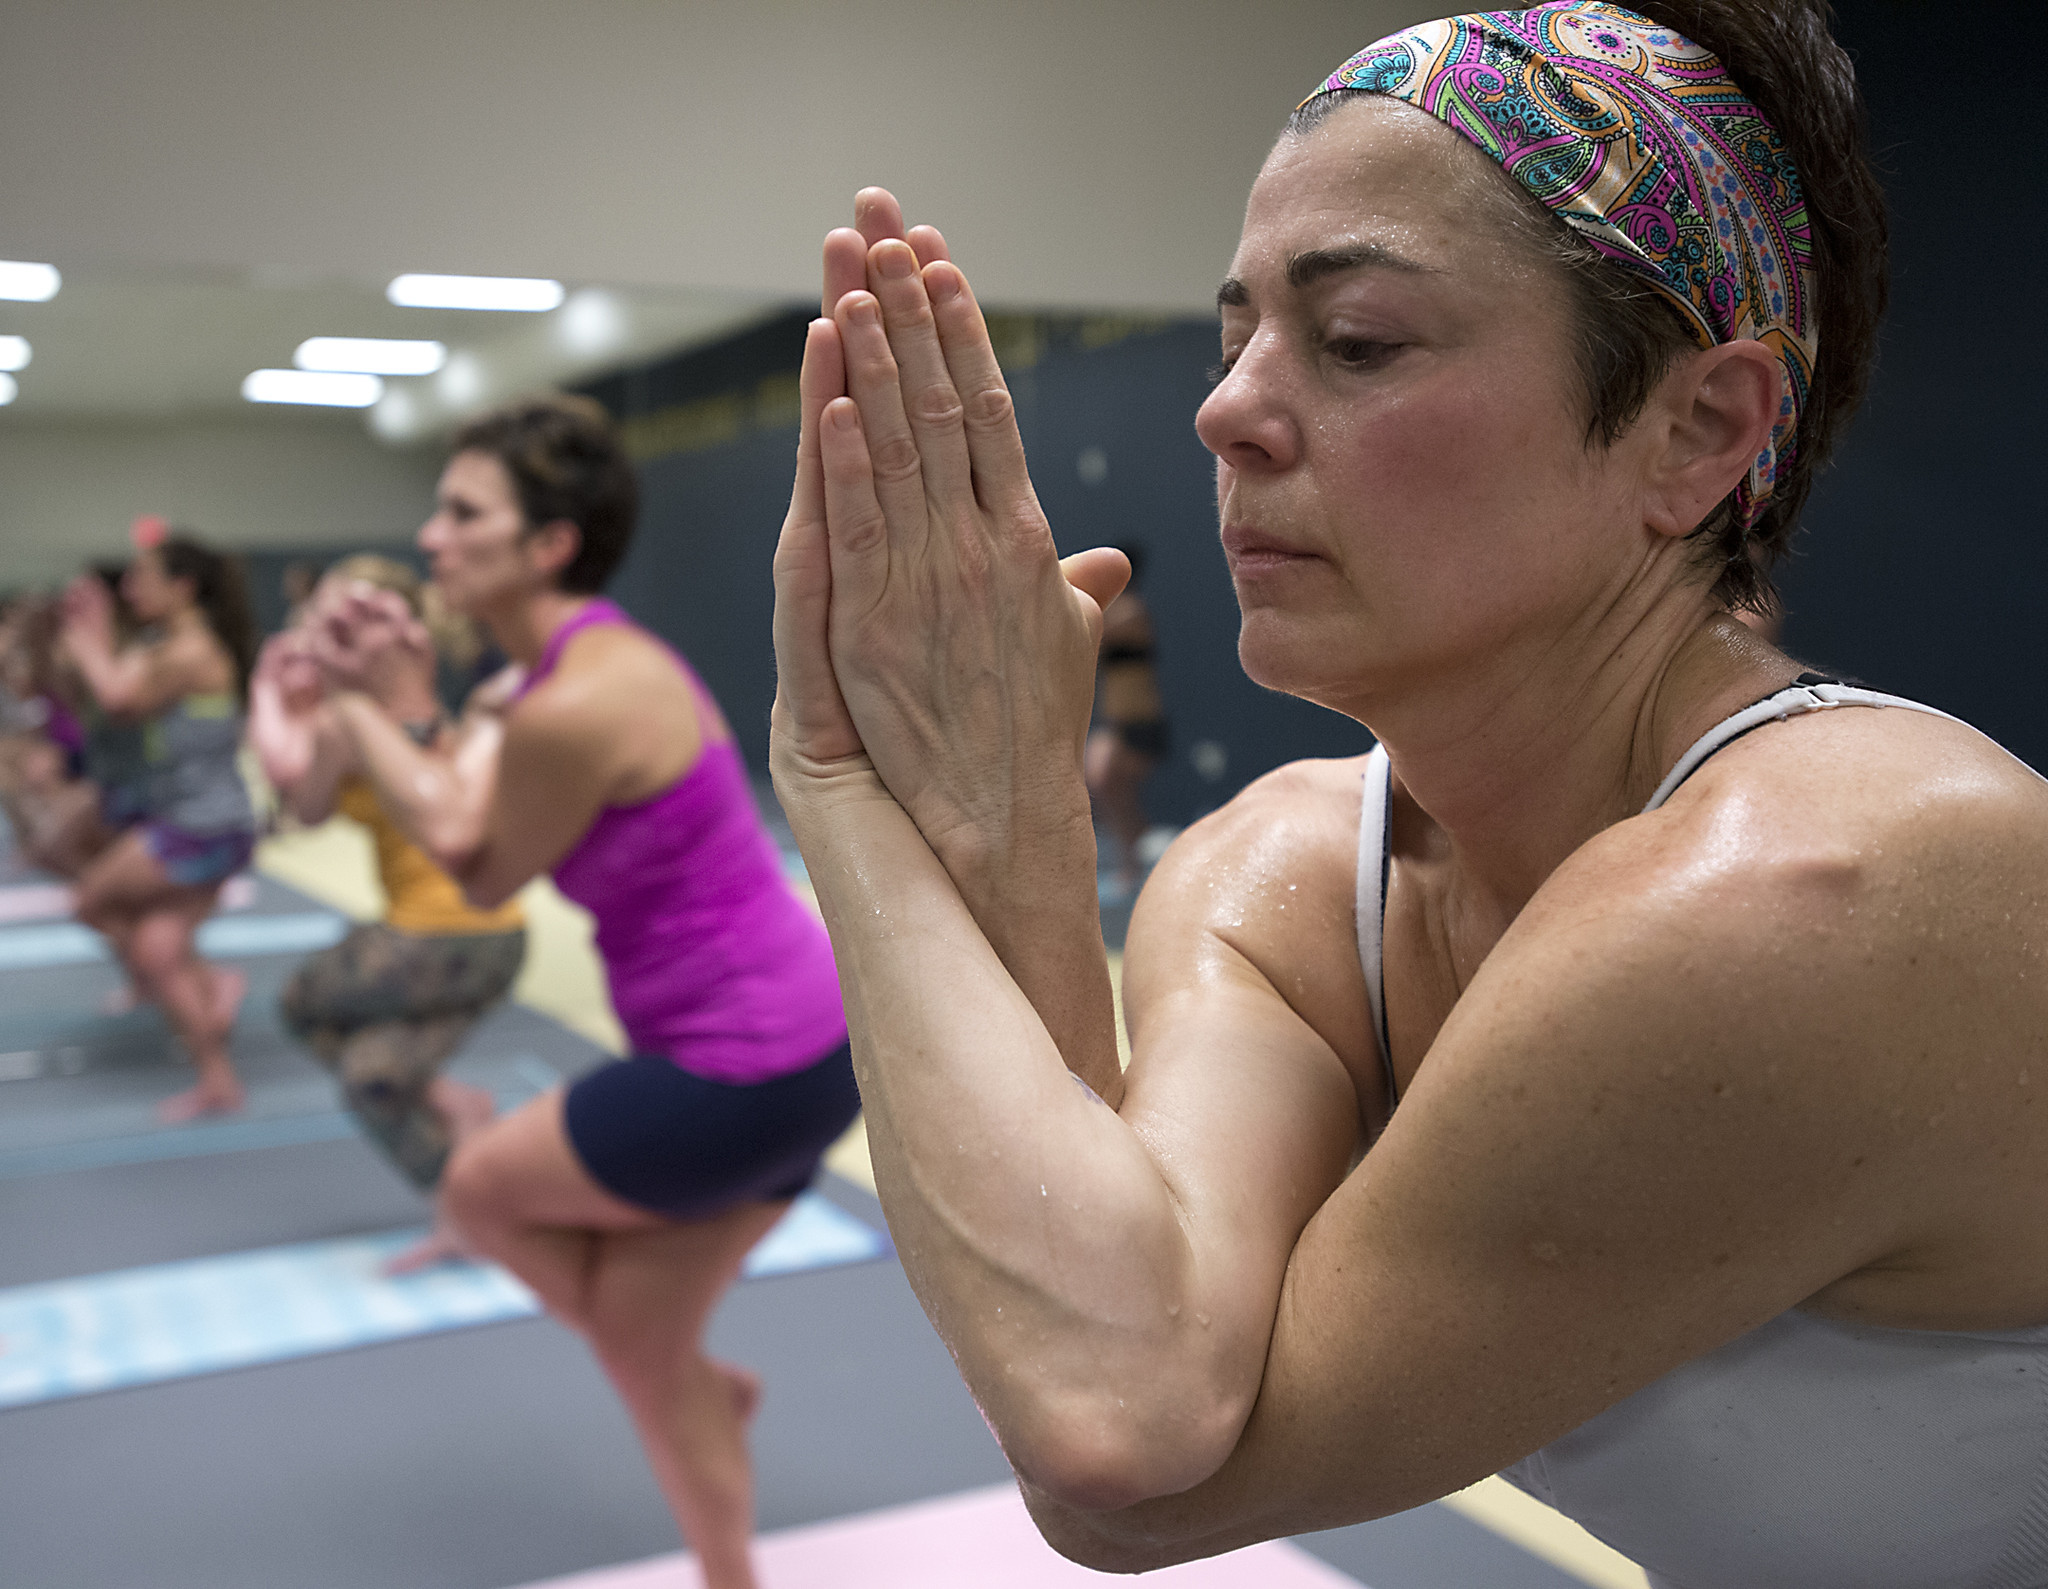 PICTURES Sweating It Out With Bikram Yoga